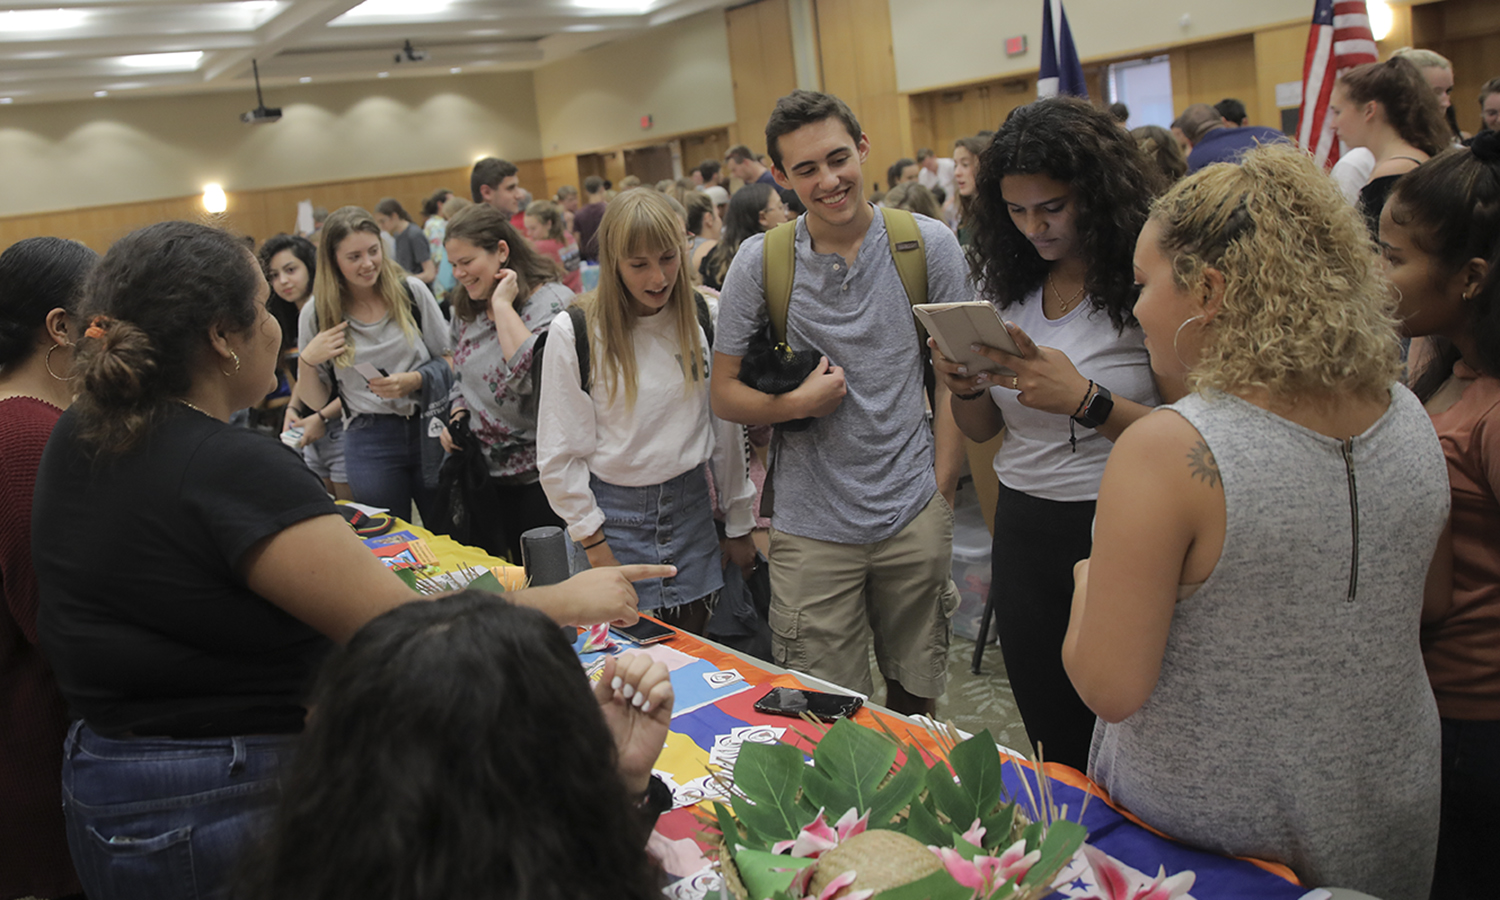 Nele Keller '22 (center left), Robert Russell '22 and Zerina Makhdoomi '22 chat with members of the Latin American Organization during the Involvement Expo.